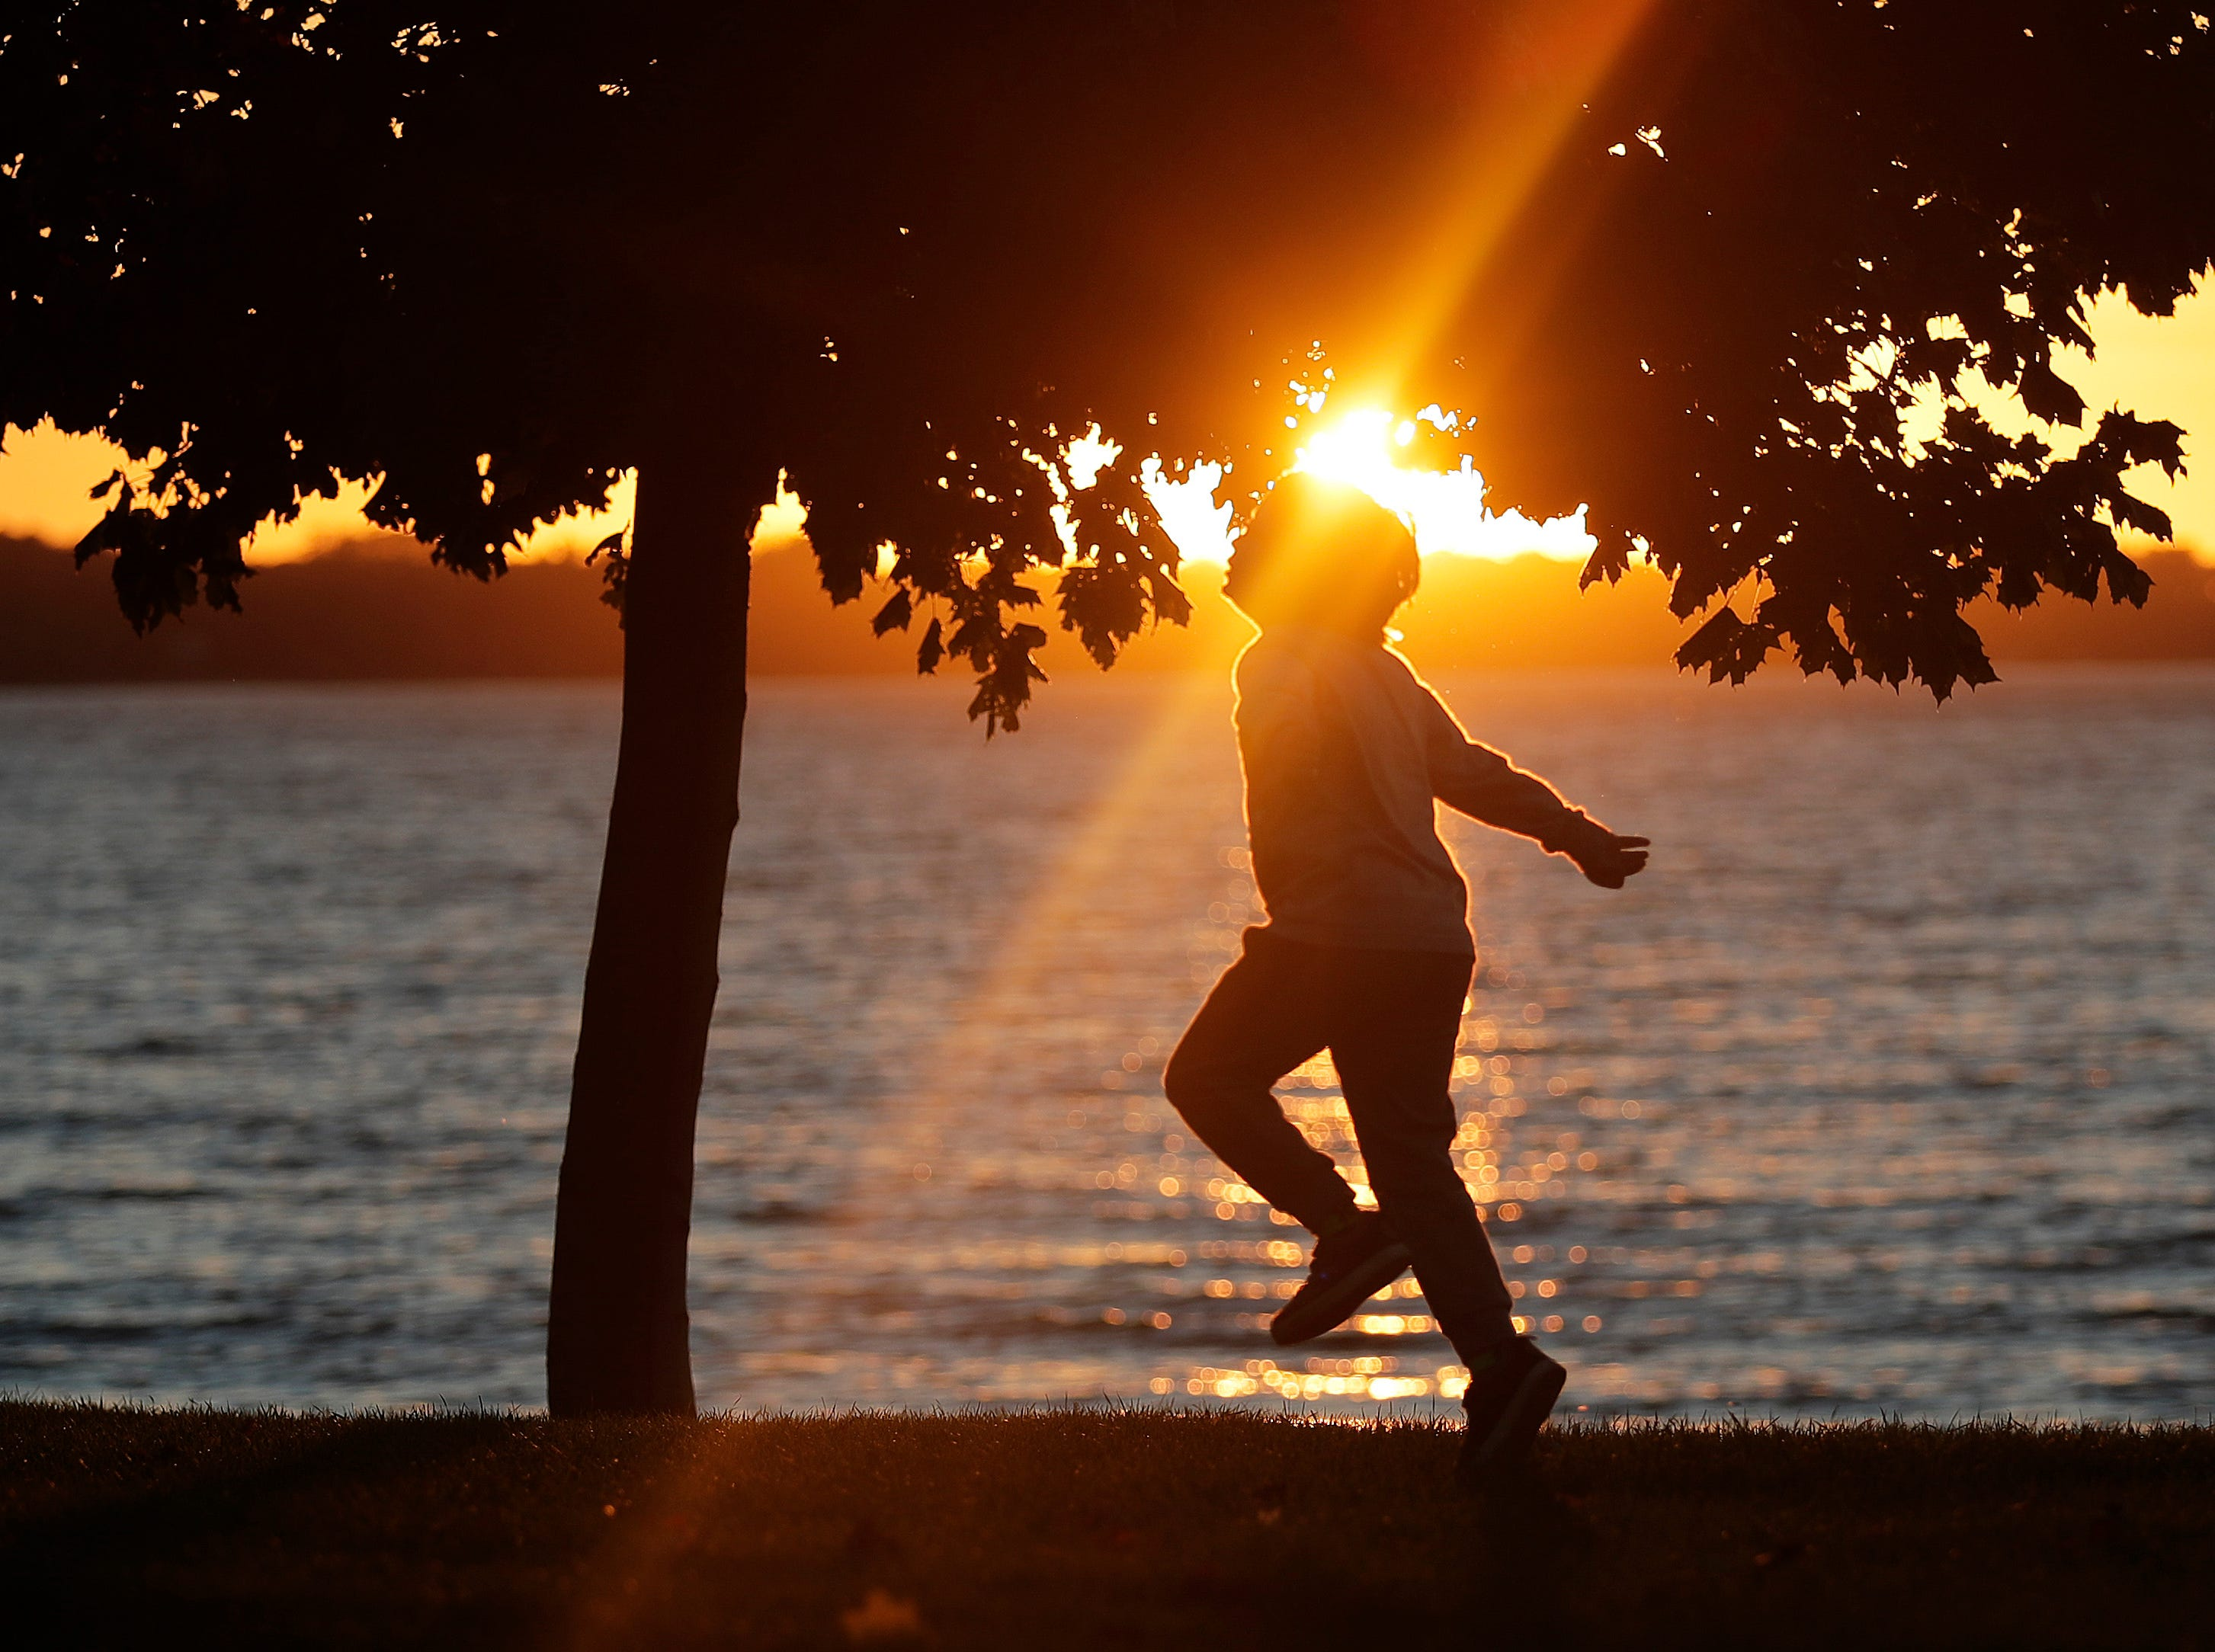 Arlo Eggert, 7, of Green Bay frolics beneath a tree as the sun sets over the bay of Green Bay at Communiversity Park Thursday, October 18, 2018 in Green Bay, Wis